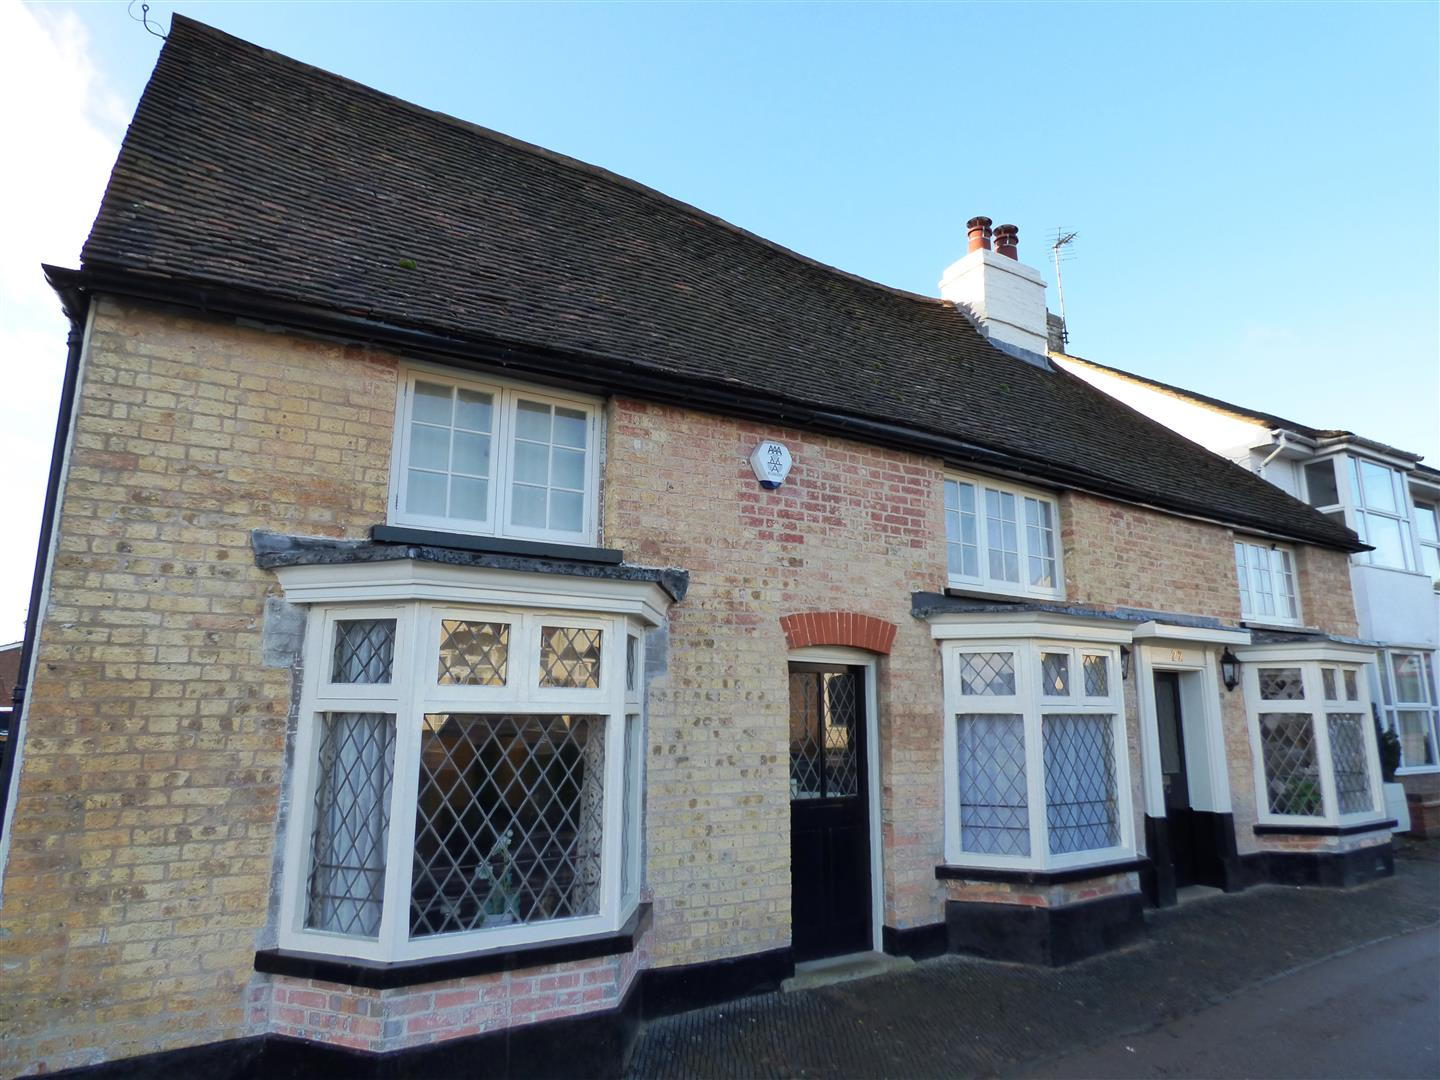 3 Bedrooms Cottage House for rent in Market Square, Toddington, Dunstable